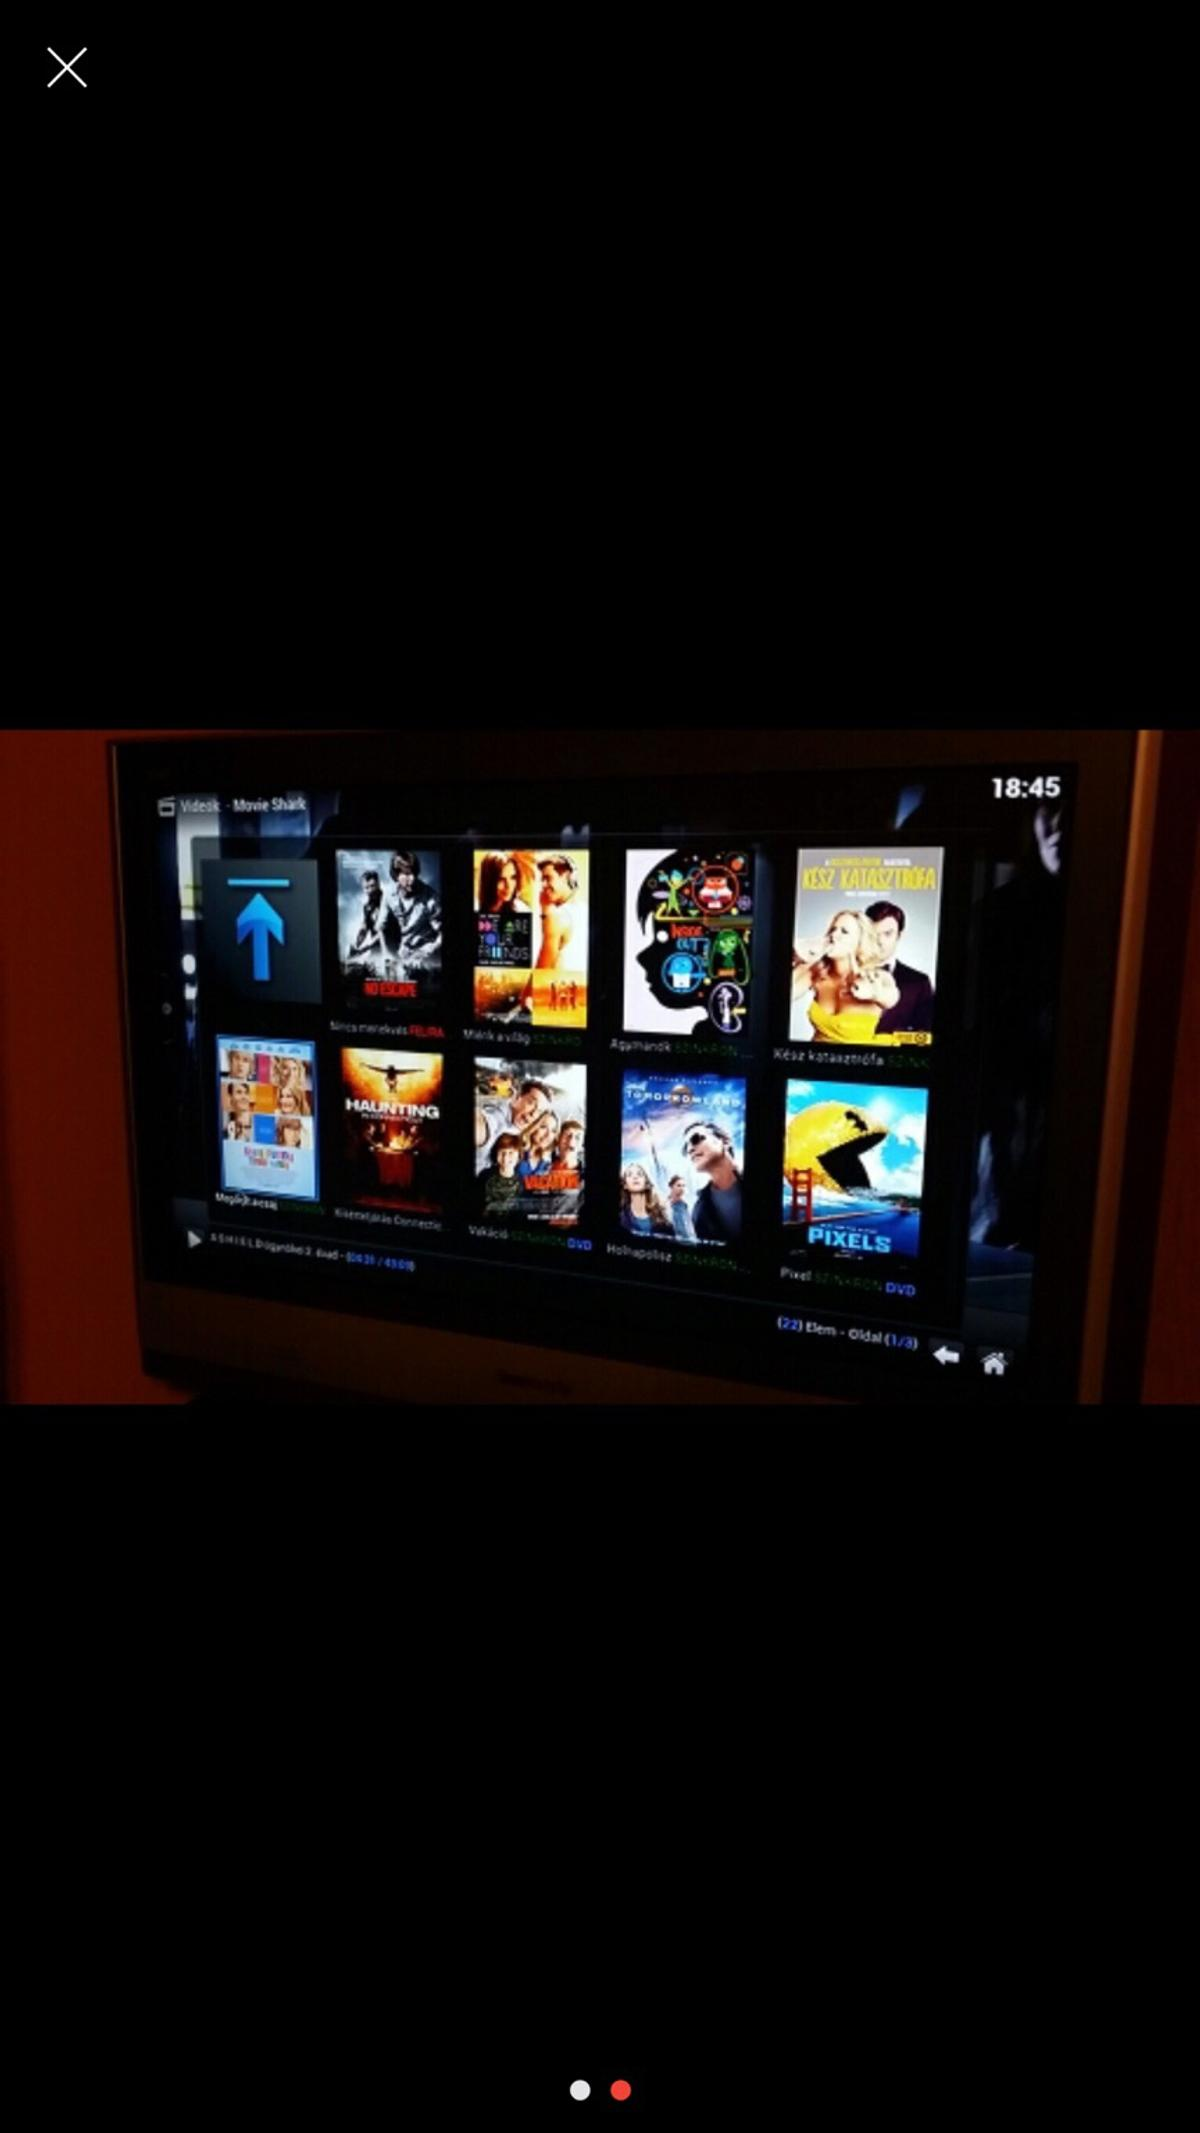 Mxq new TV box free movie sports channels in M15 Manchester for